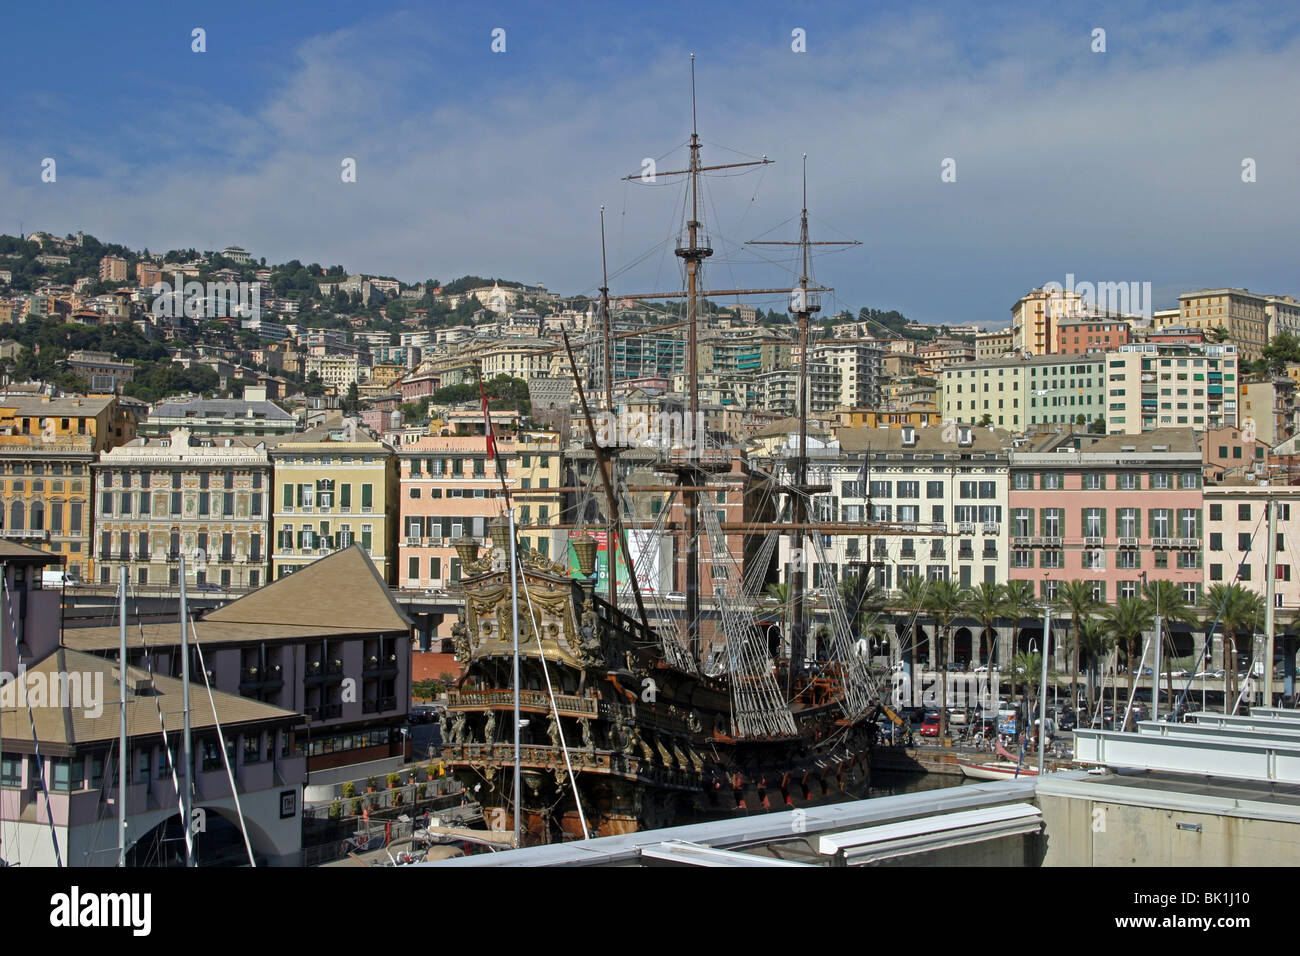 Italy, Genoa, Cityscape and the city harbour - Stock Image